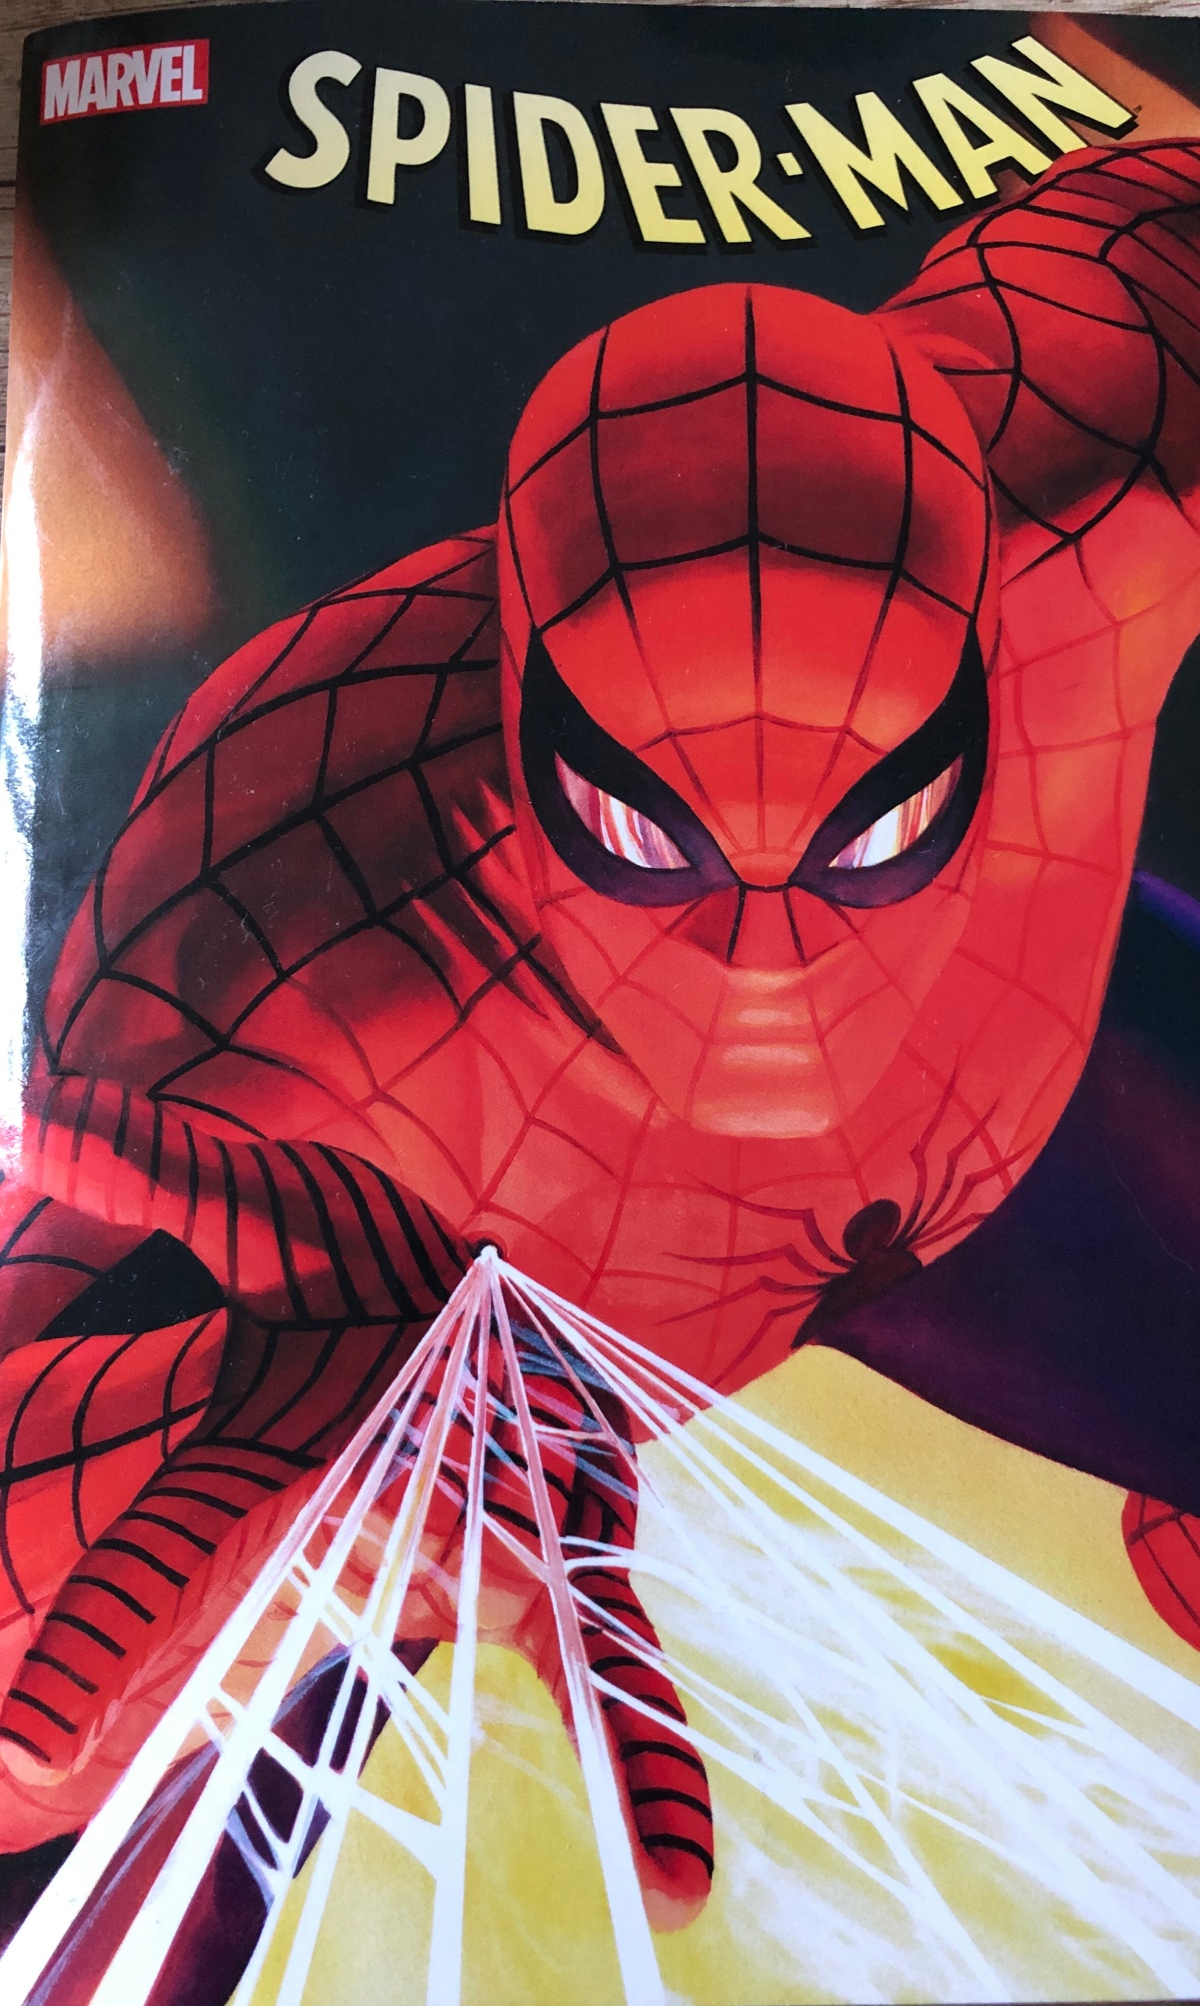 The Amazing Spider-Man (2018/19er Serie) #1 |Review